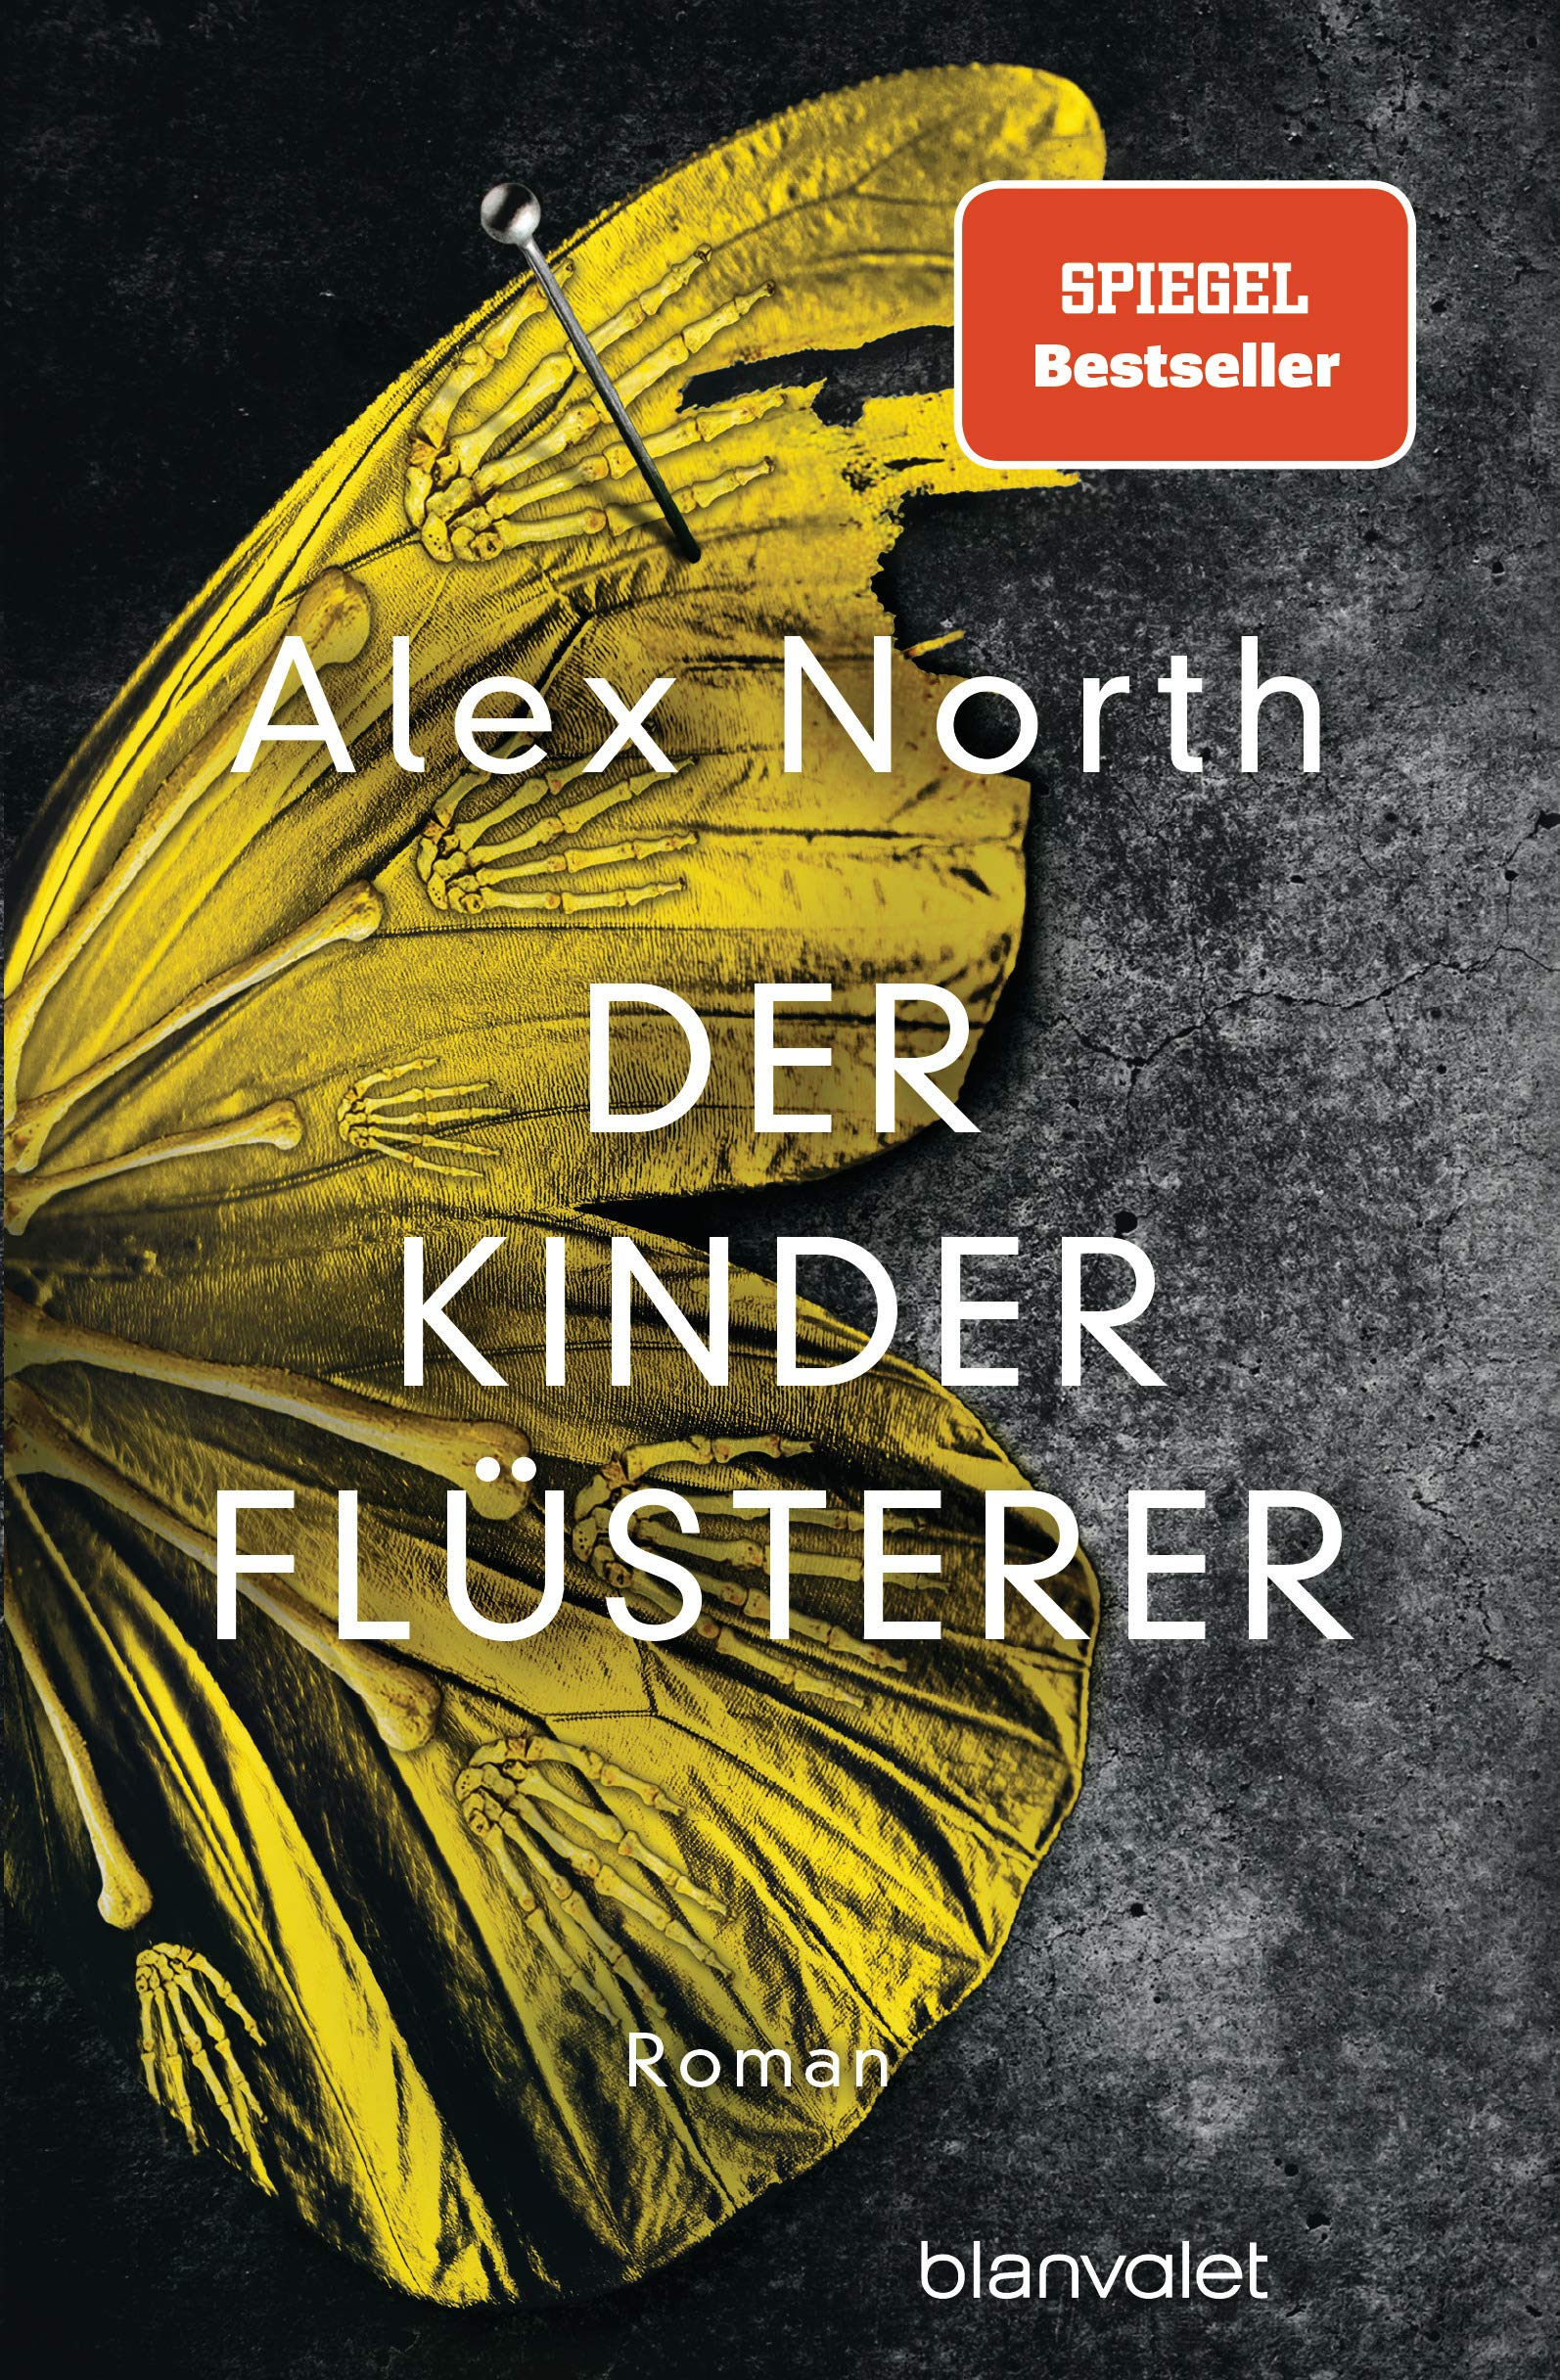 alex north der kinderfluesterer cover